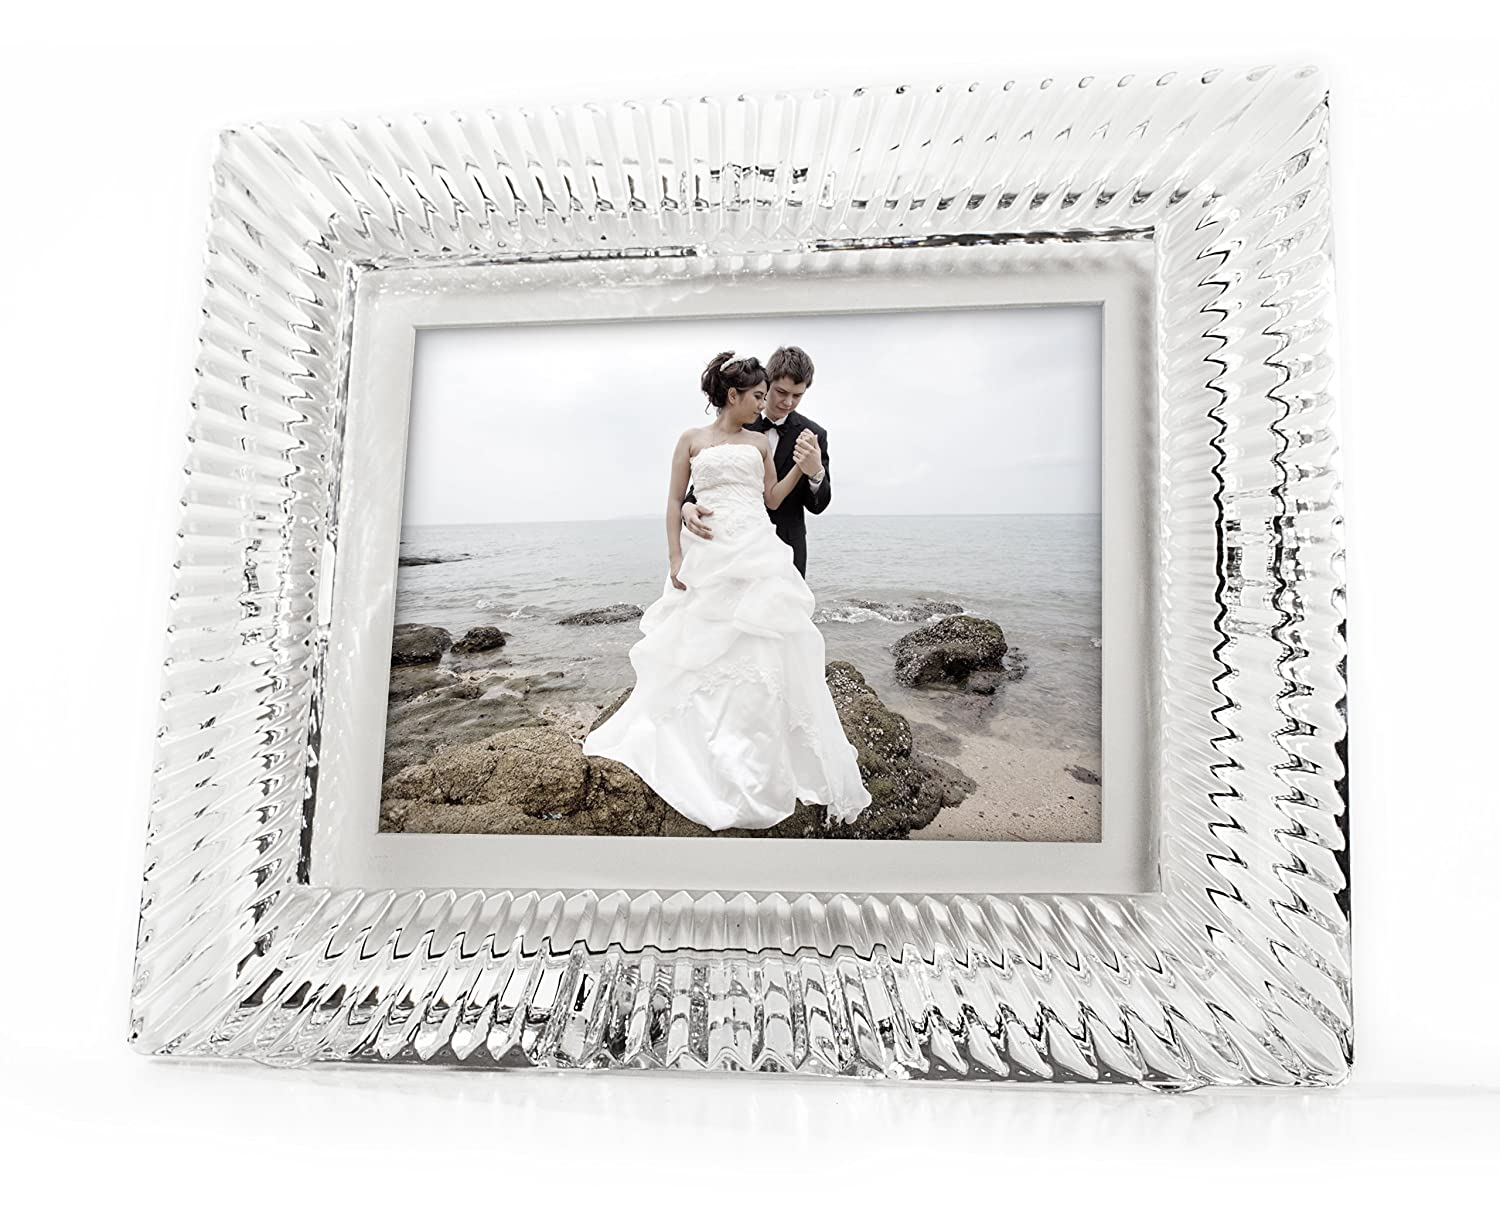 Amazon waterford crystal digital photo frame 8 inch home amazon waterford crystal digital photo frame 8 inch home kitchen jeuxipadfo Images